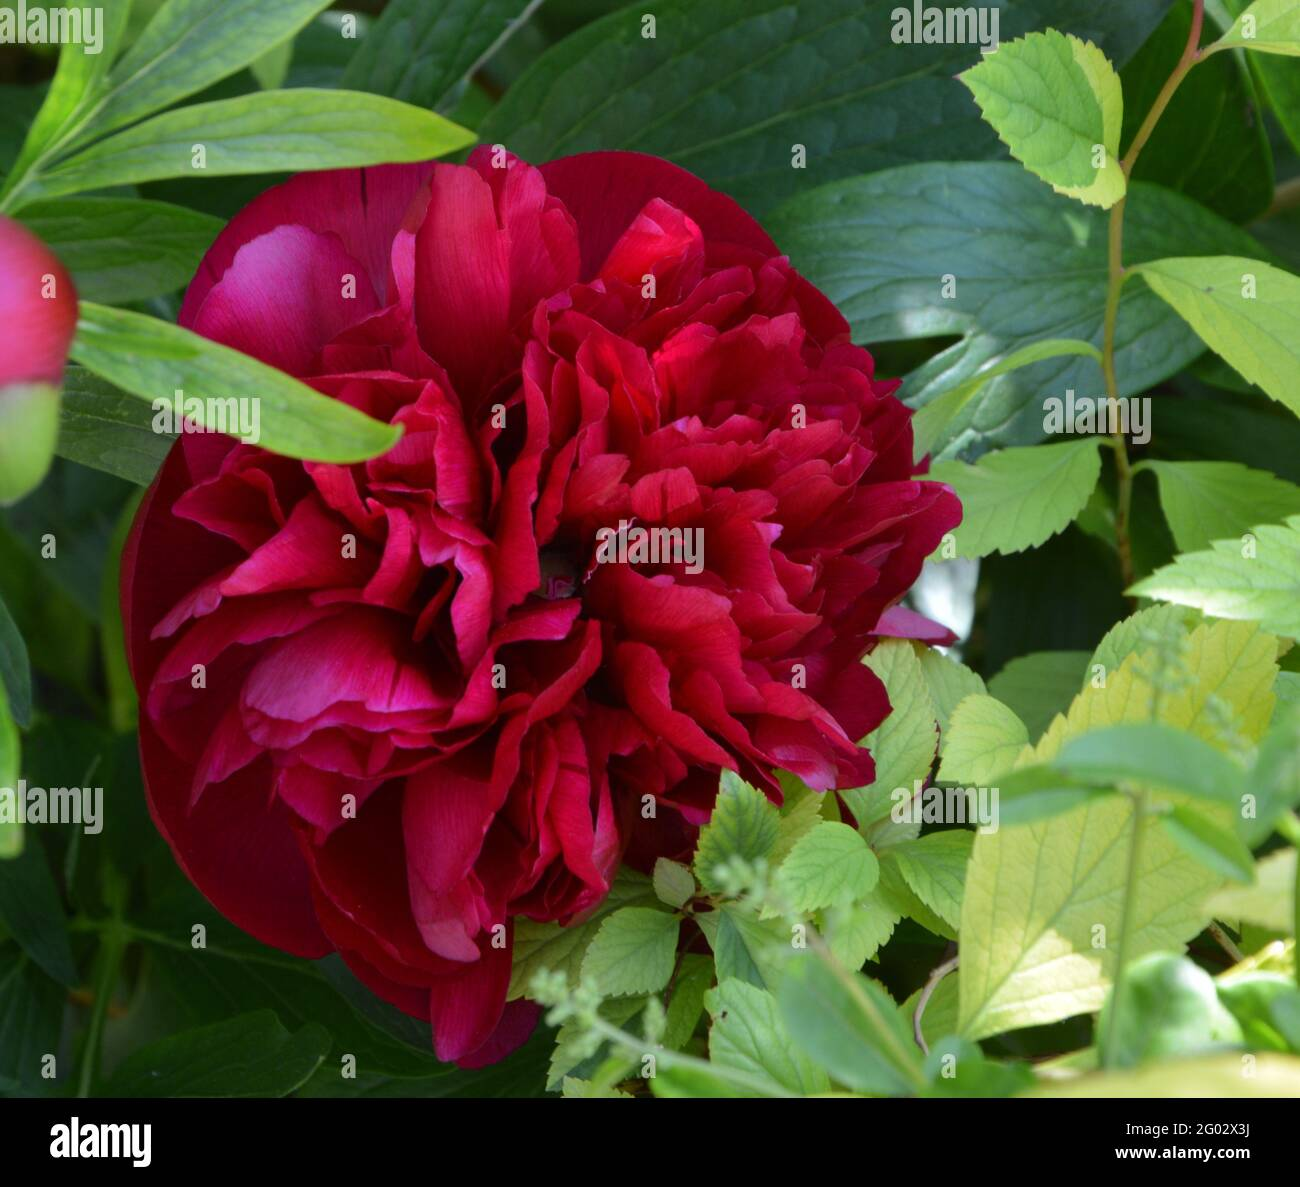 Paeonia Officinalis Rubra Plena,  Purely Beautiful and Peaceful Floral Space Stock Photo